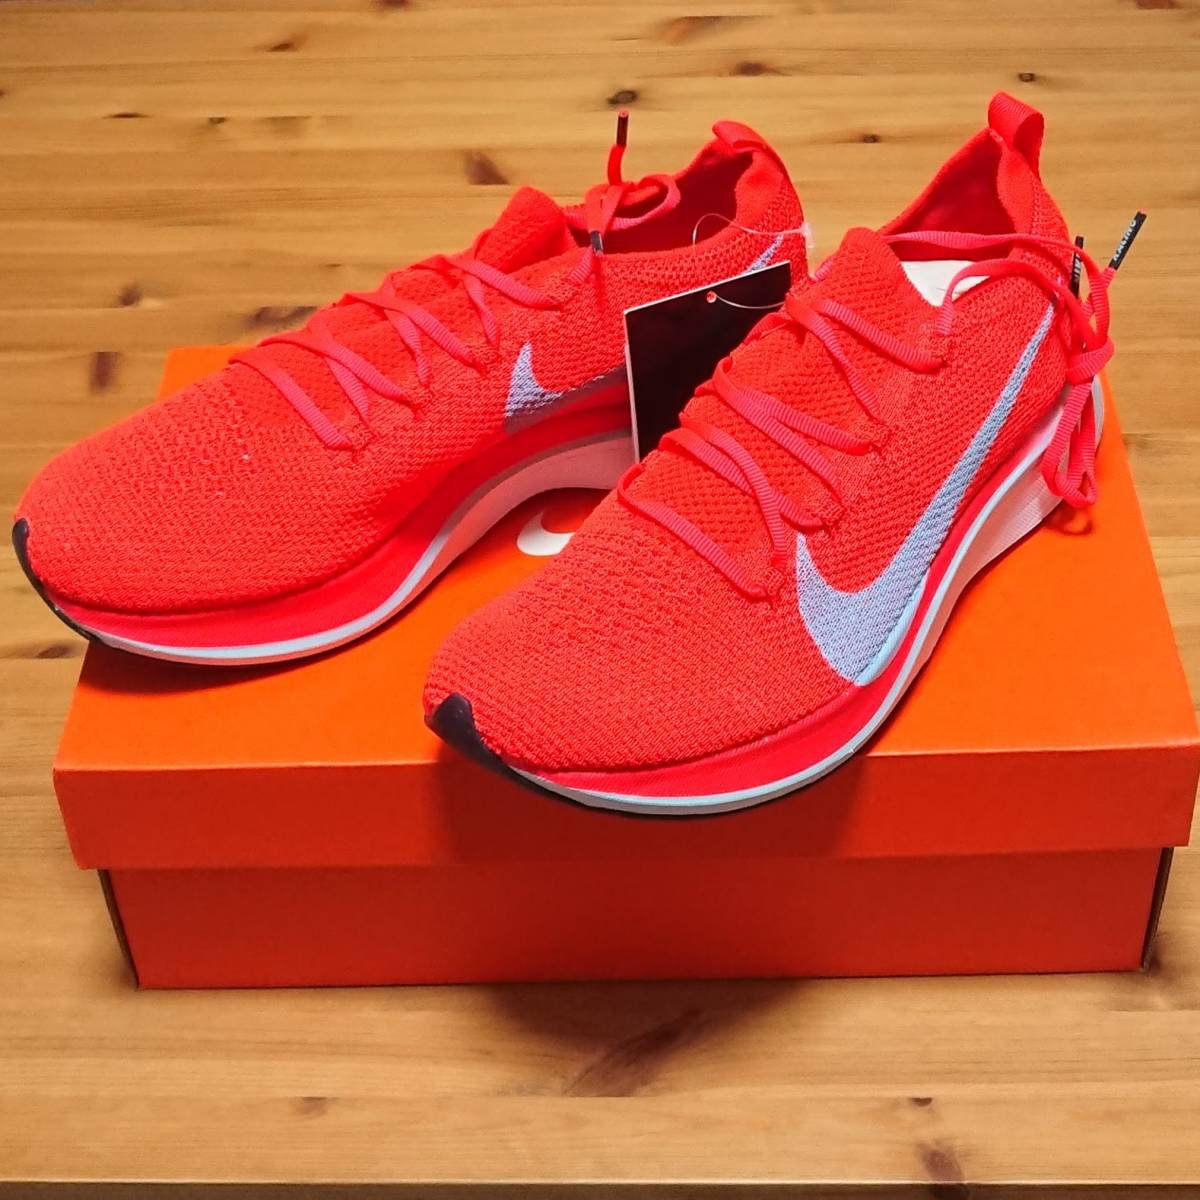 f93b901d4c49 free shipping 26cm NIKE ZOOM VAPORFLY 4% FLYKNIT Nike zoom veipa- fly fly  knitted